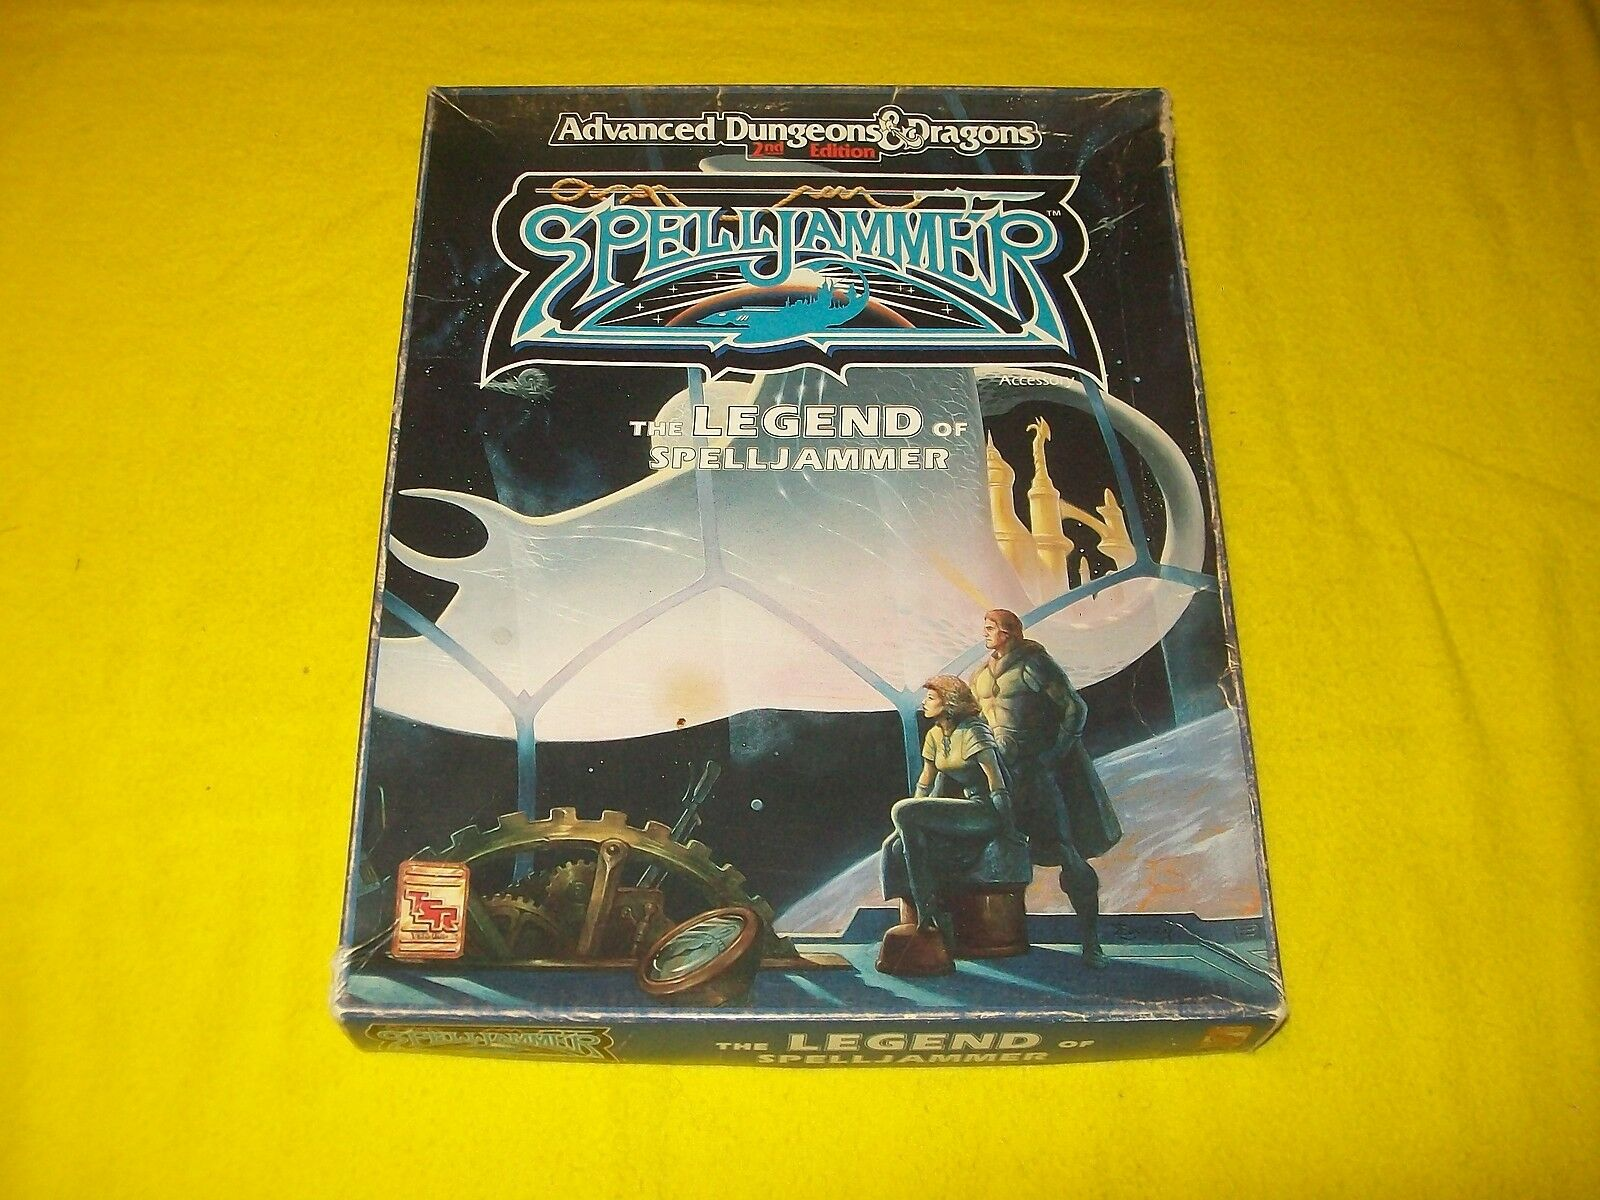 THE LEGEND OF SPELLJAMMER DUNGEONS & DRAGONS AD&D 2ND EDITION TSR 1065 - 1